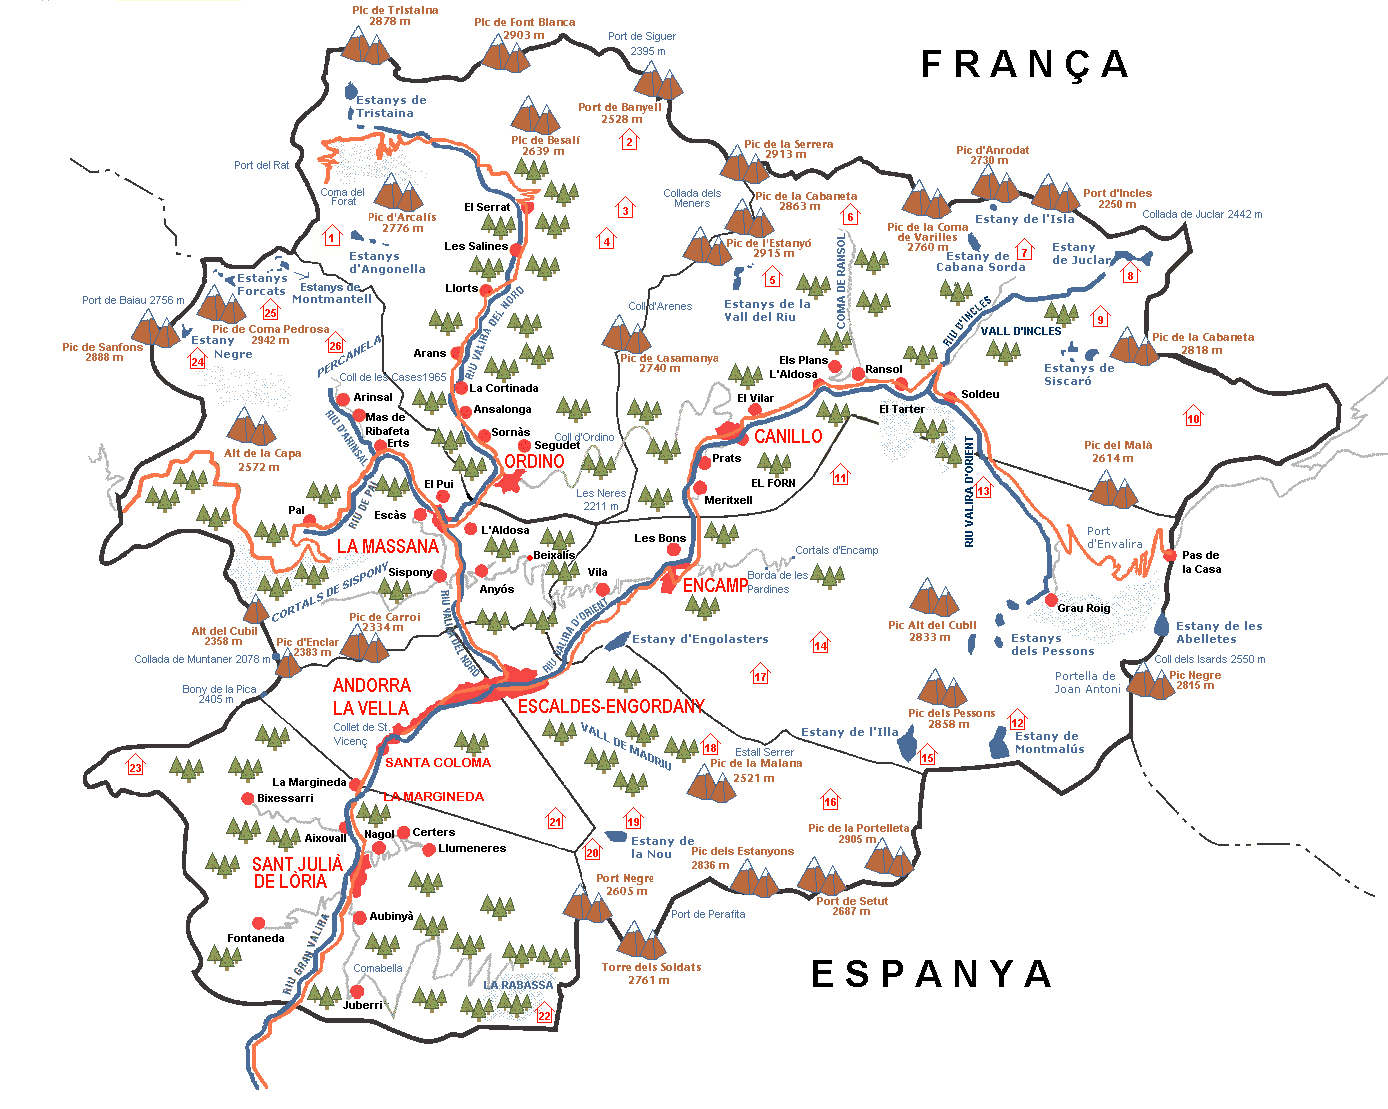 Impressum - Where is andorra in europe map